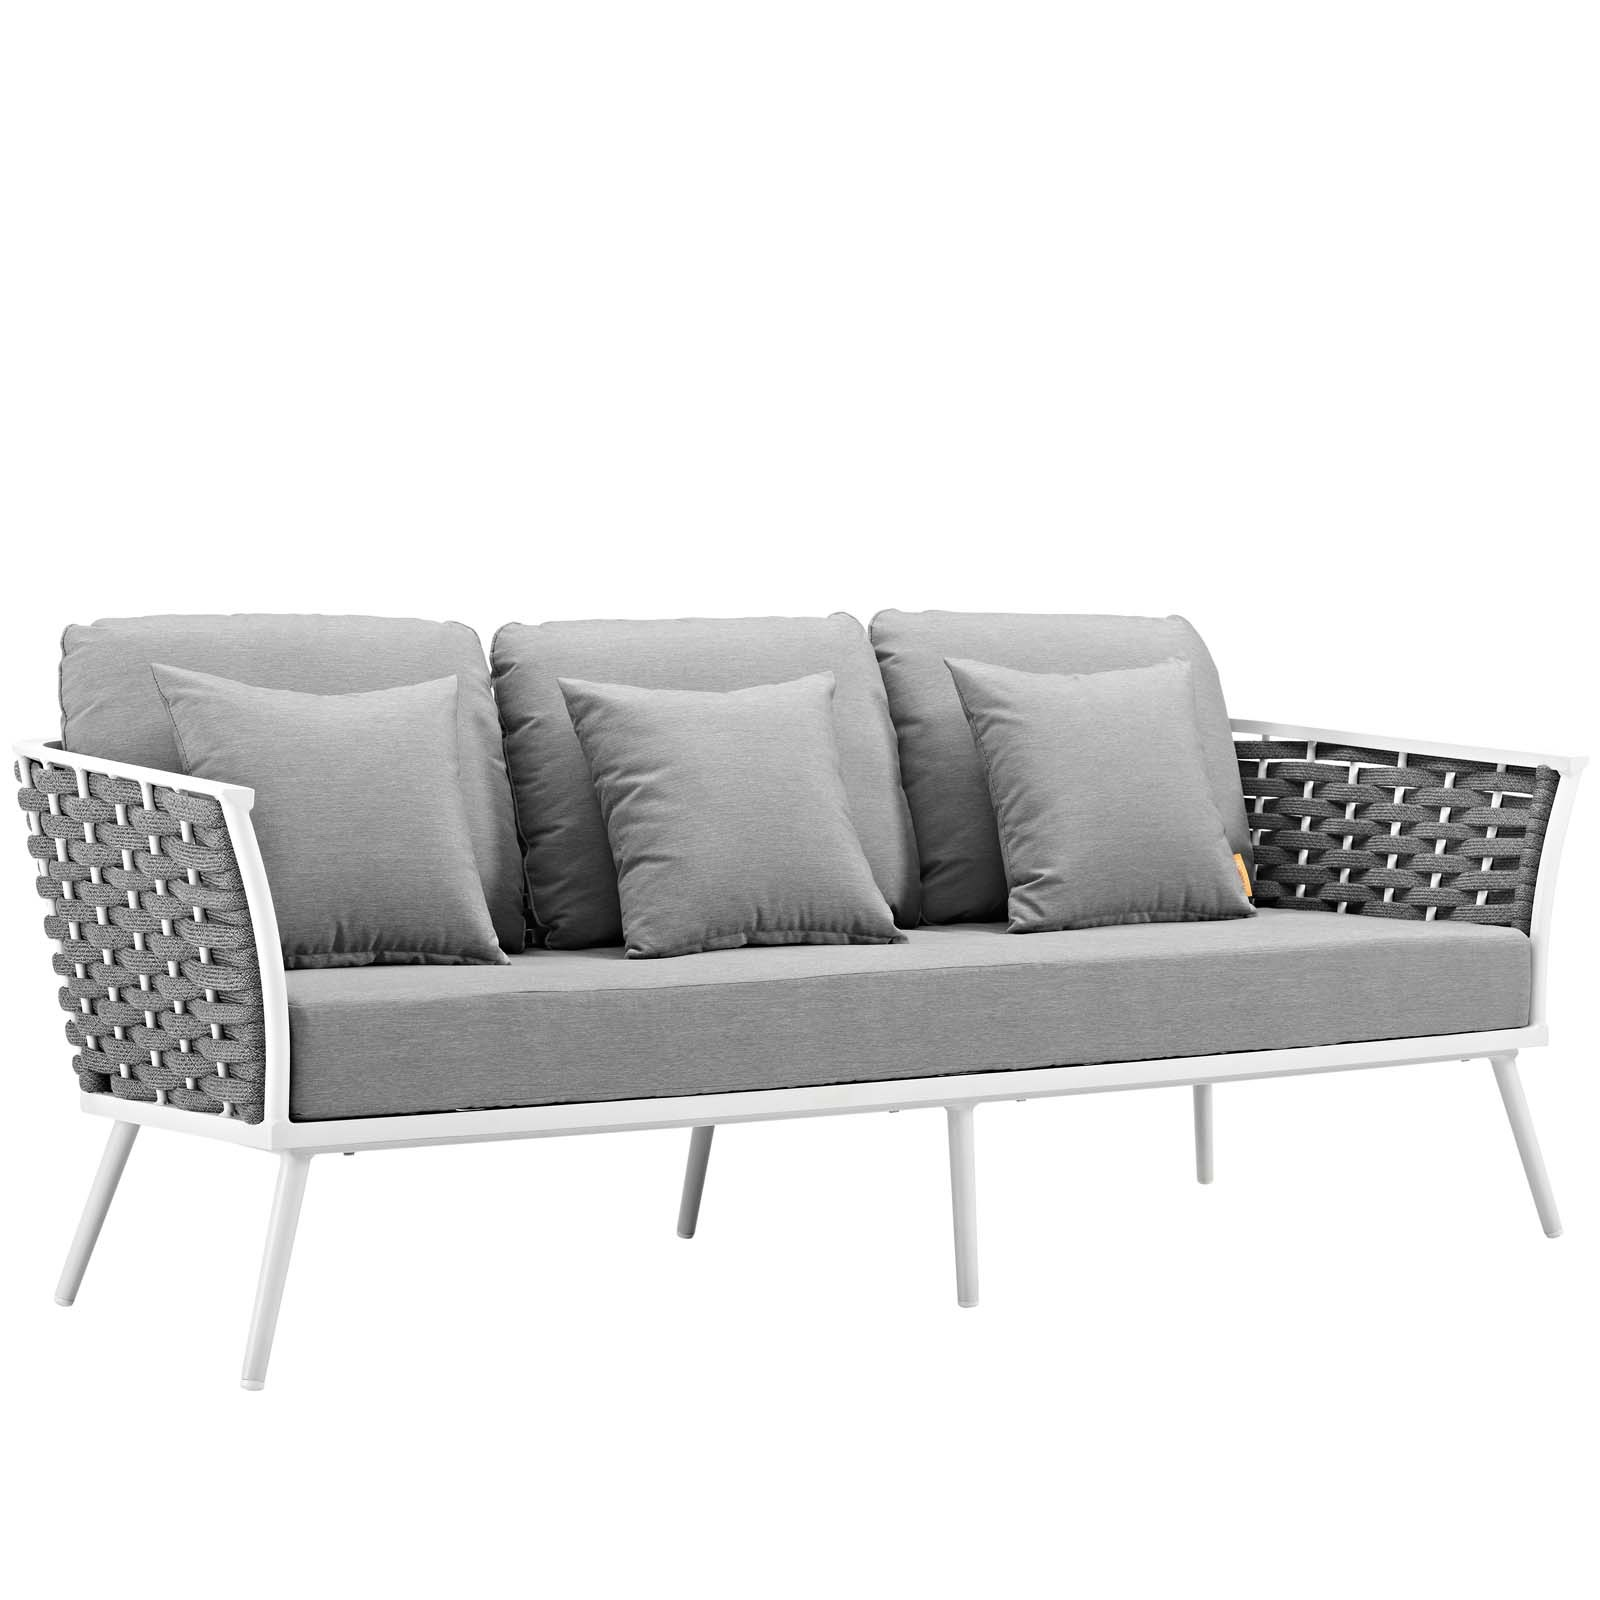 Stance Outdoor Patio Aluminum Sofa